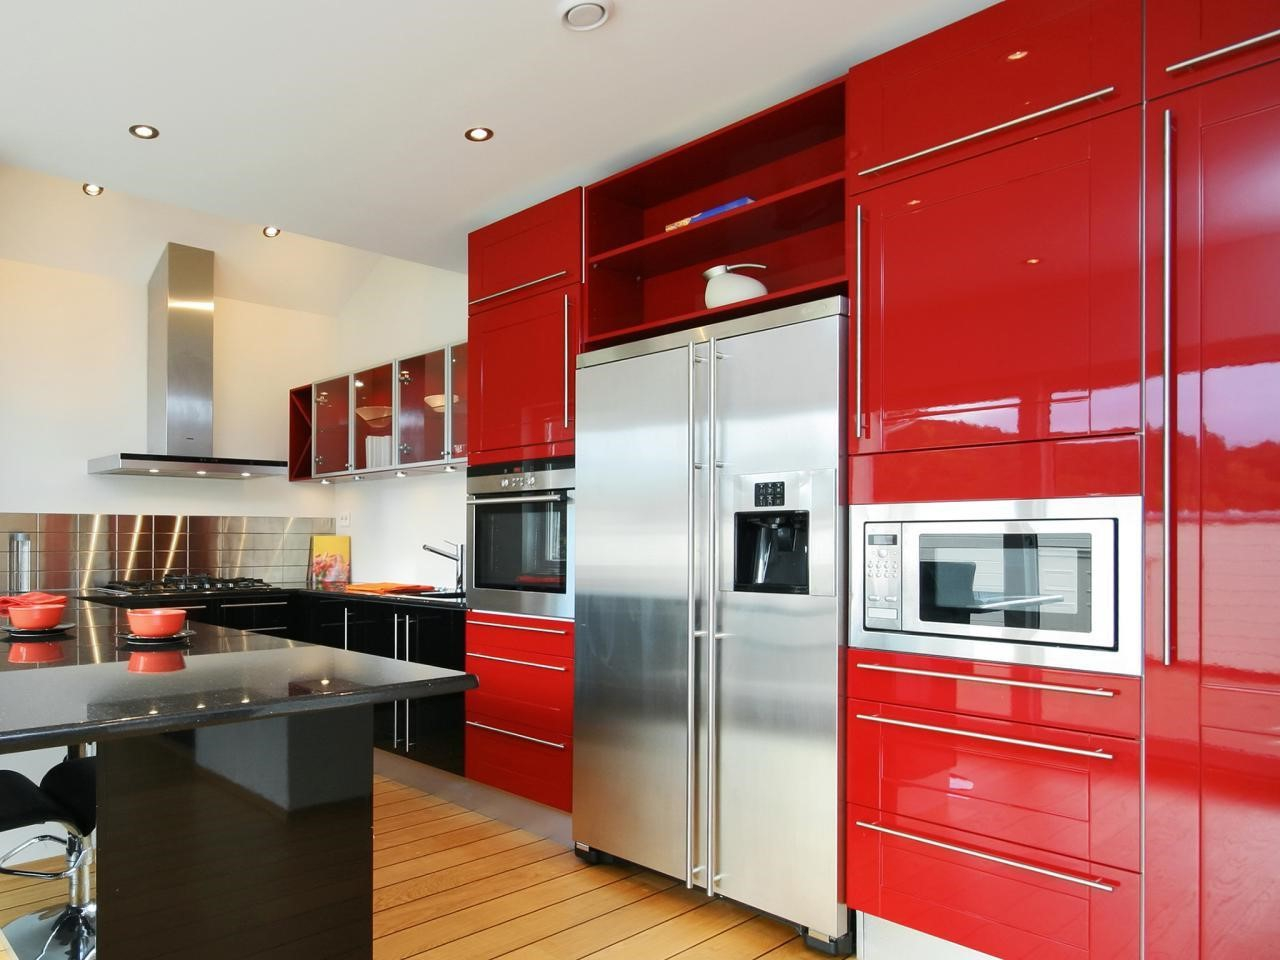 best modern kitchen cabinets pictures of kitchen cabinets Retro Red Modern Kitchen Cabibet